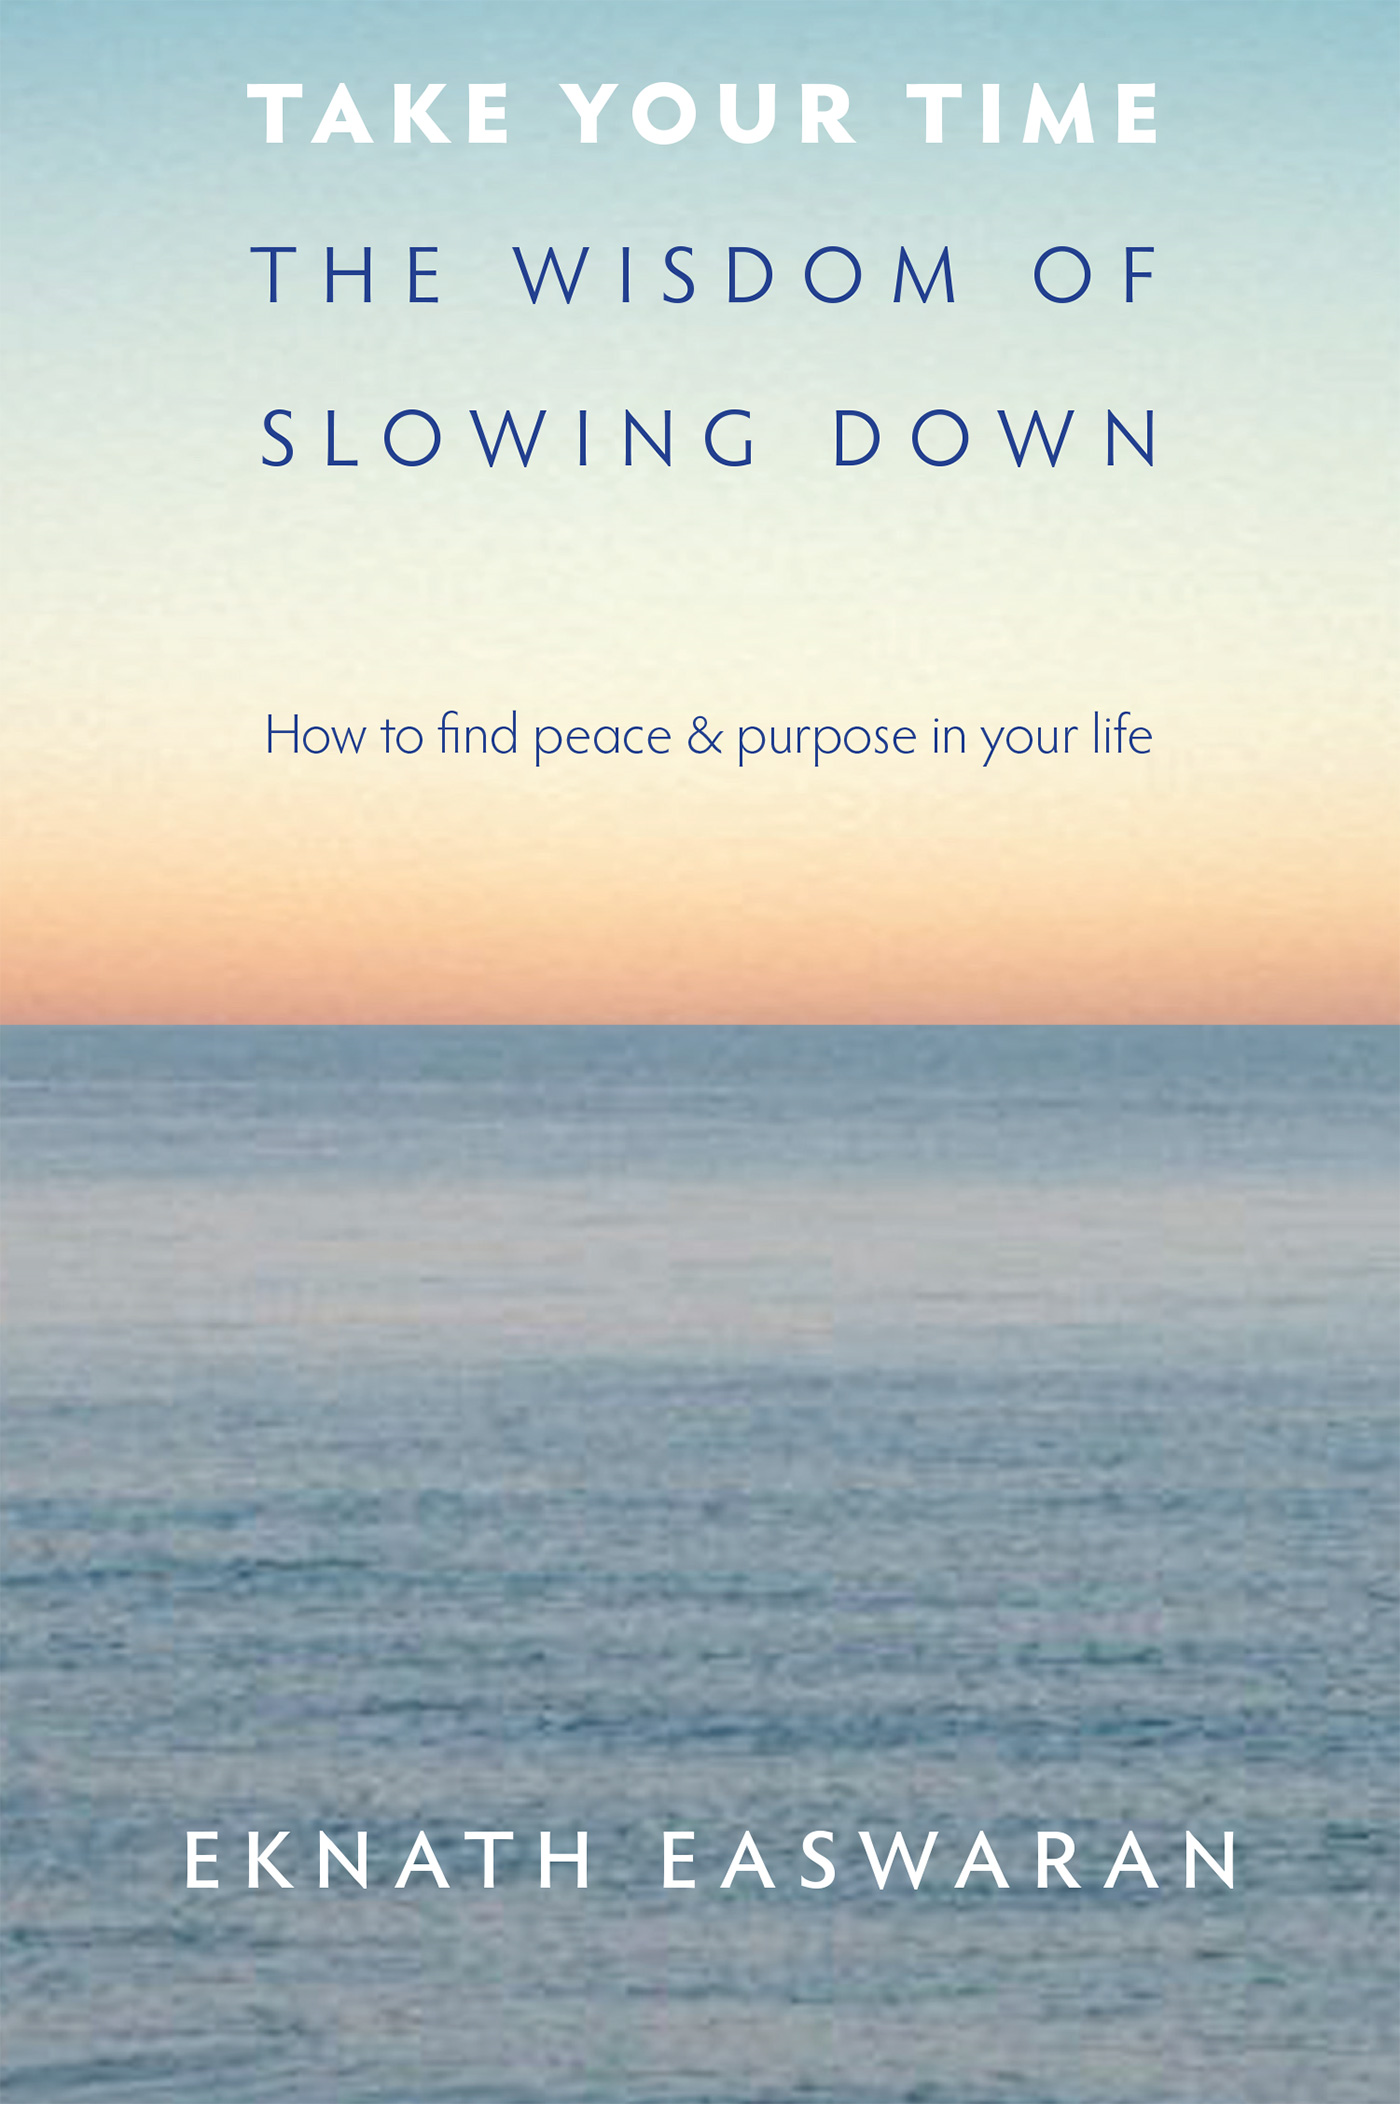 Take Your Time: The Wisdom of Slowing Down By: Eknath Easwaran